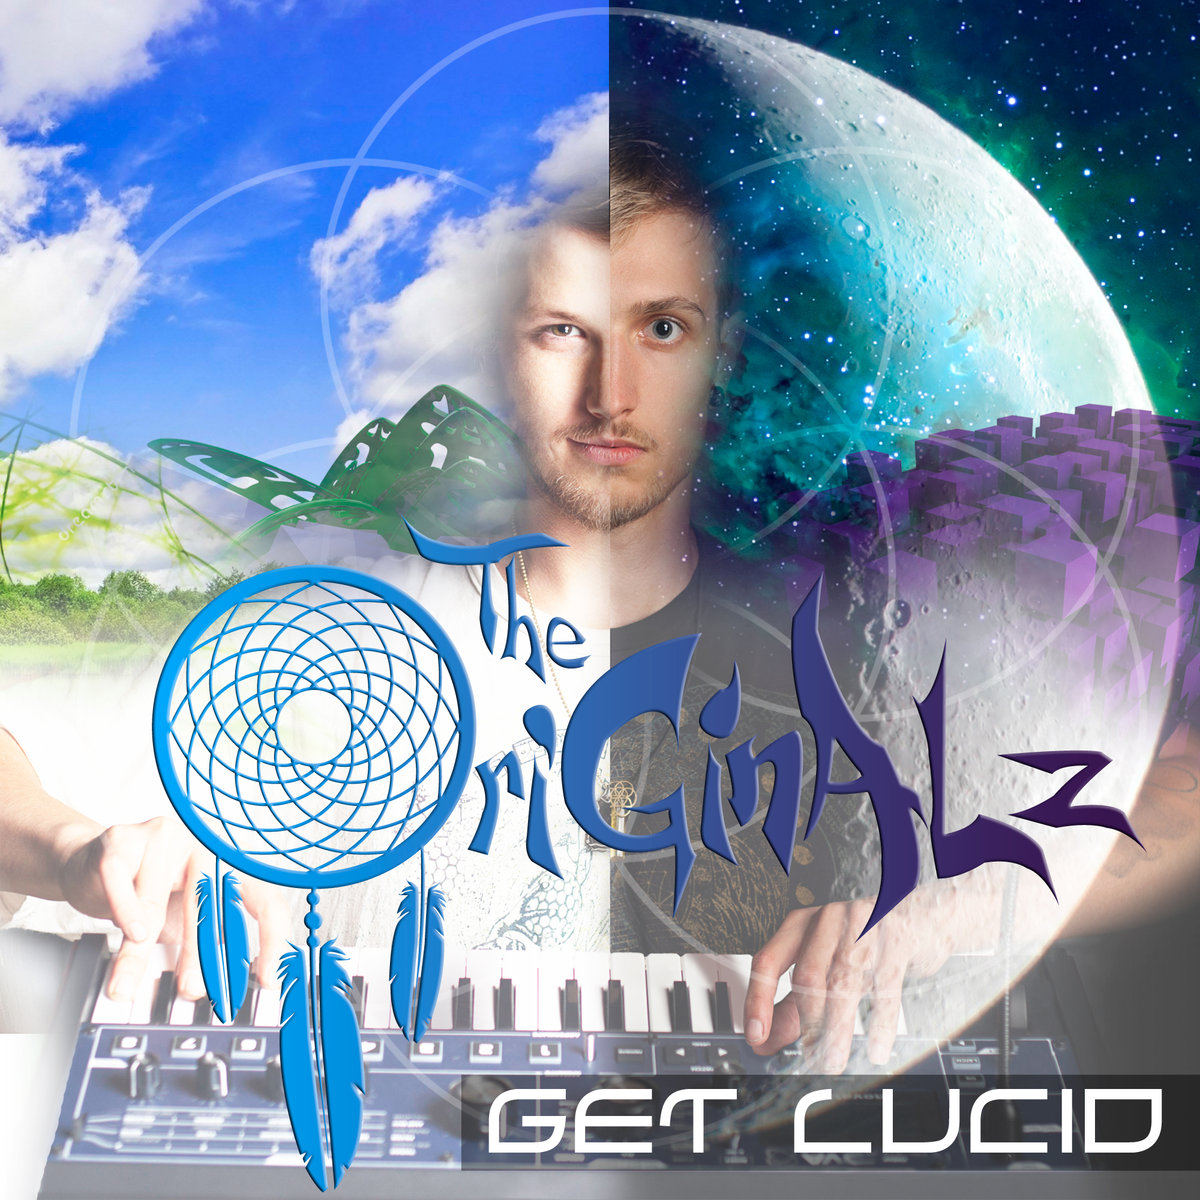 The OriGinALz - Get Lucid (FiLiBuStA Remix) @ 'Get Lucid' album (Austin)